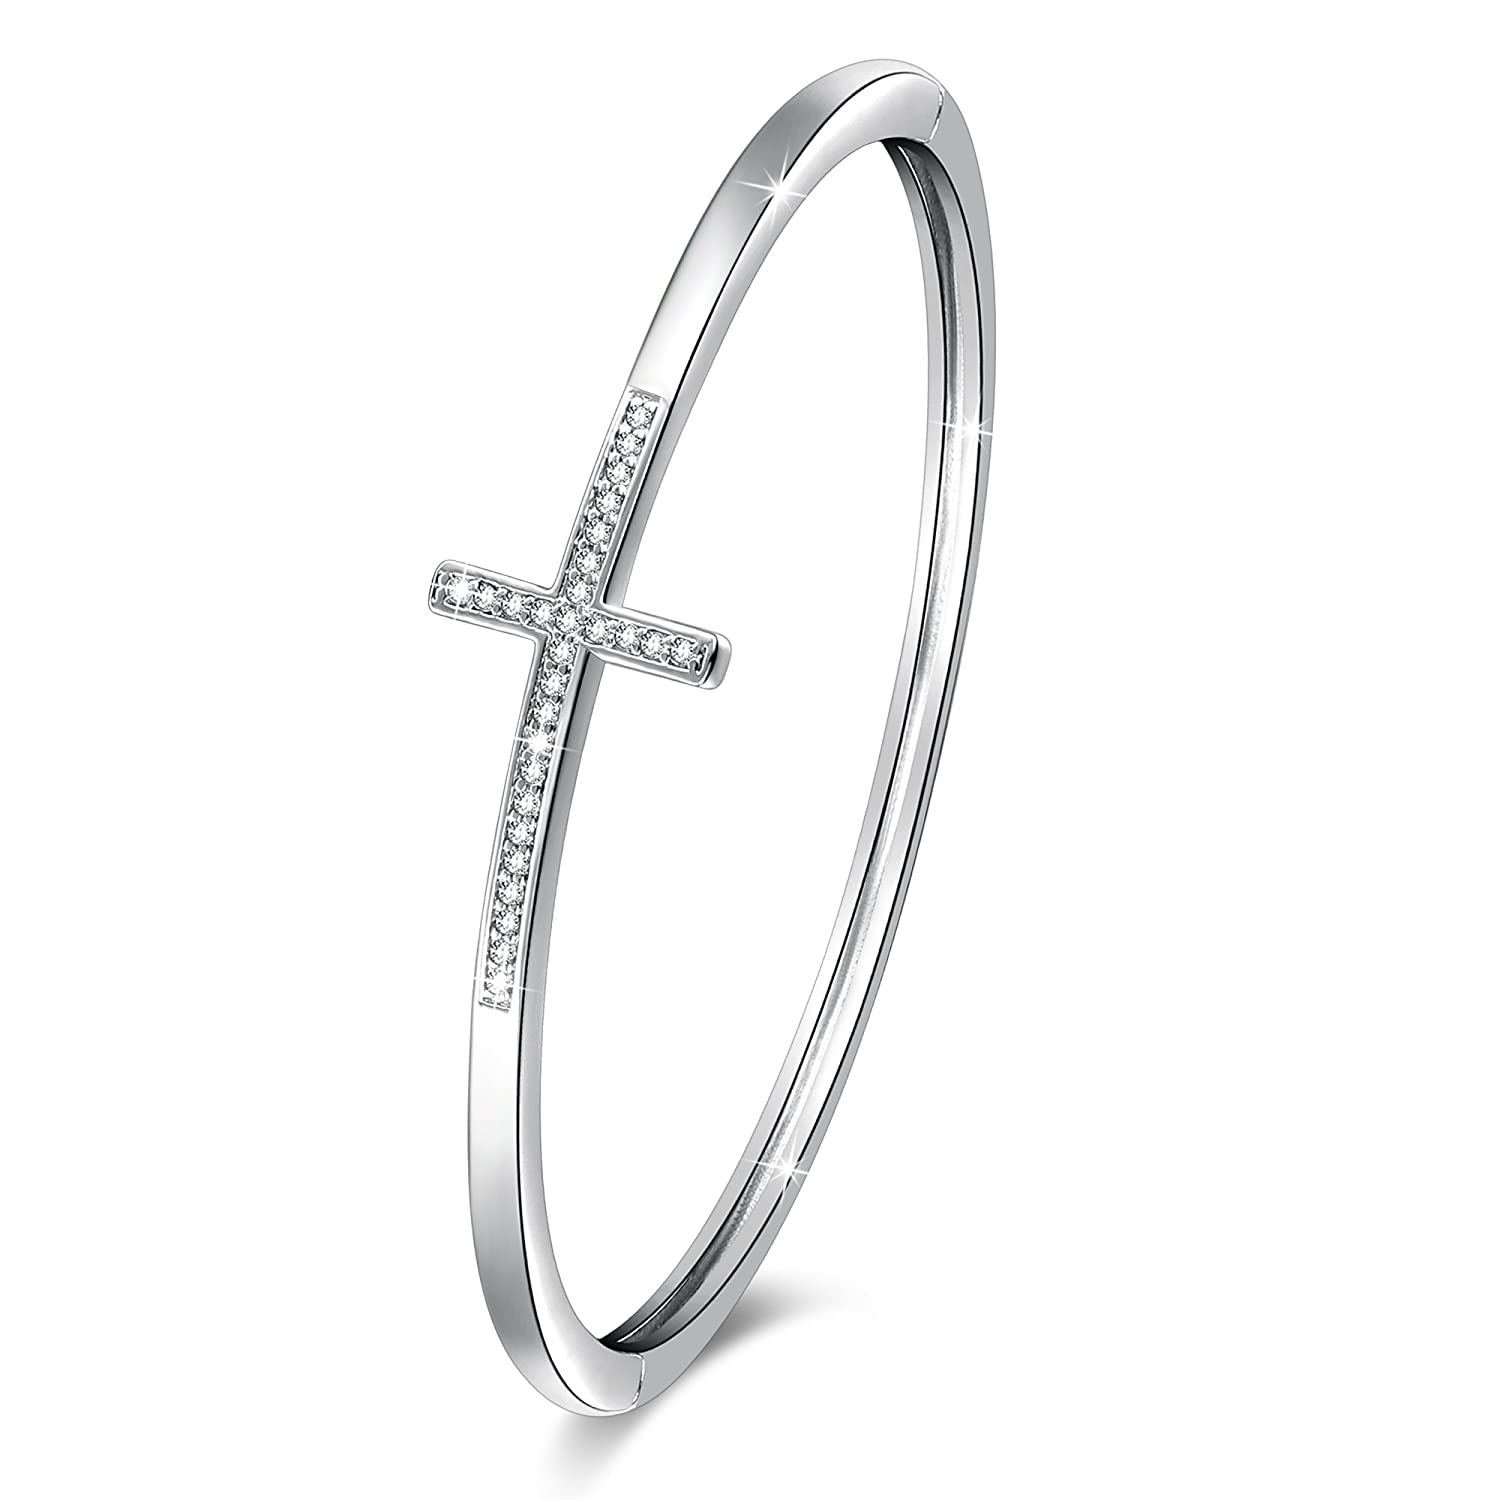 """fea763939480b GEORGE · SMITH Crystal Bangle Bracelet for Women """"Encounter of Love"""" 7  Inches White Gold Plated Charm Braceletswith Swarovski Crystals, Jewelry ..."""